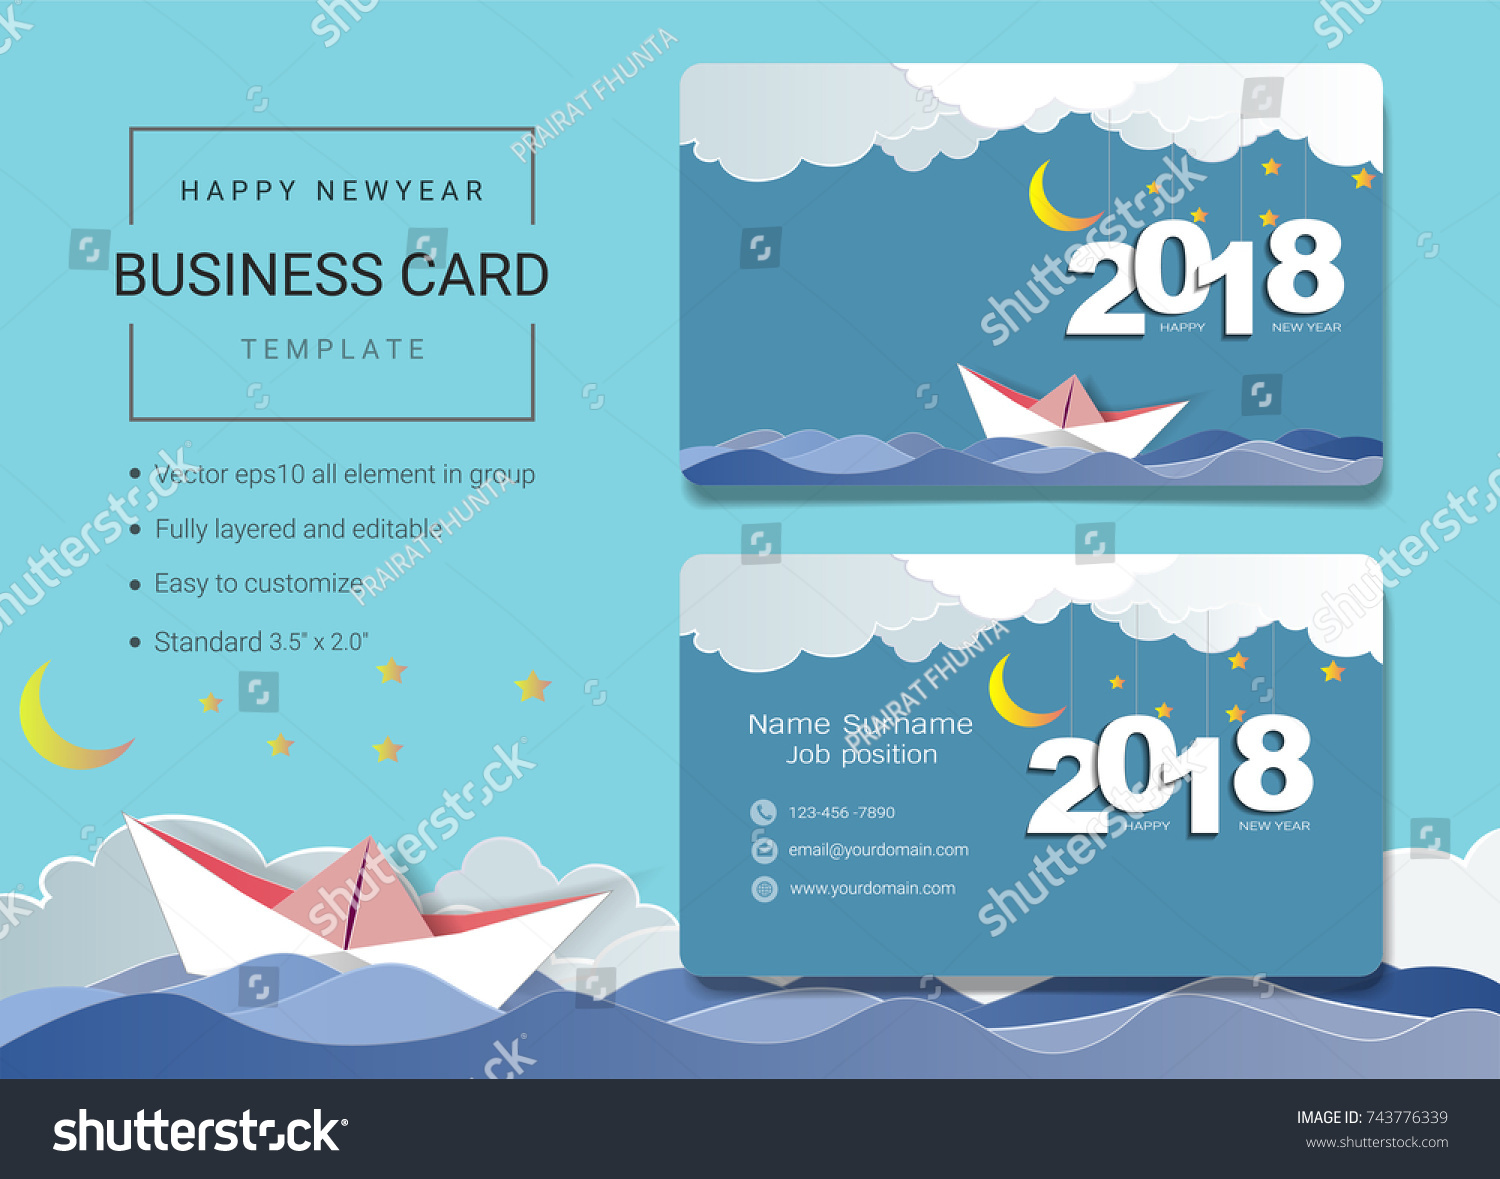 New Year Greetings Email Example Images   greetings card design simple 2018 Happy New Year Business Name Stock Vector 743776339 Shutterstock